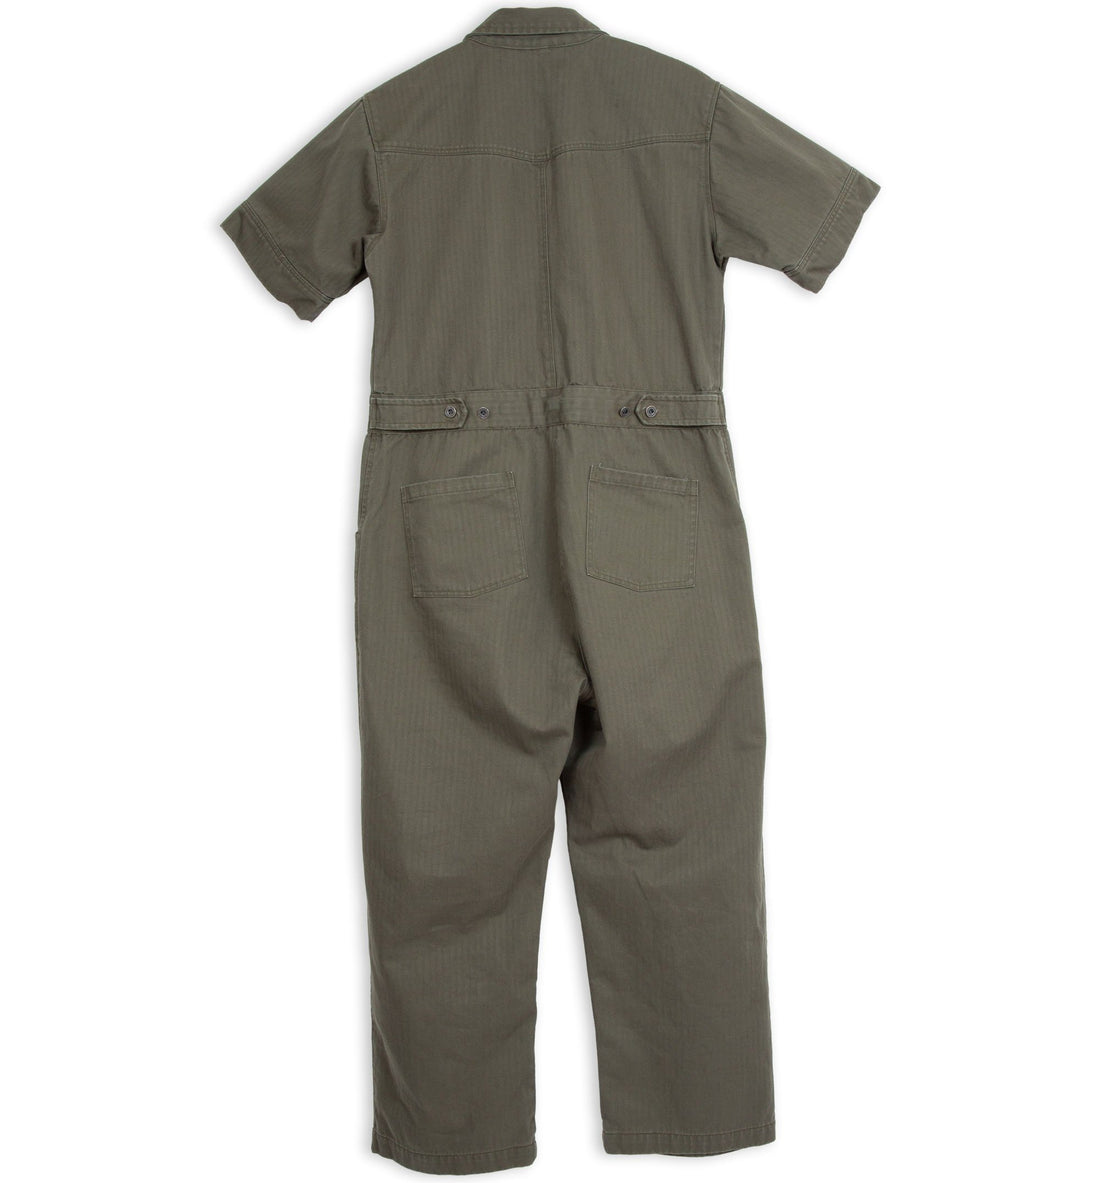 Women's Workshop Coveralls - Bottoms - Iron and Resin